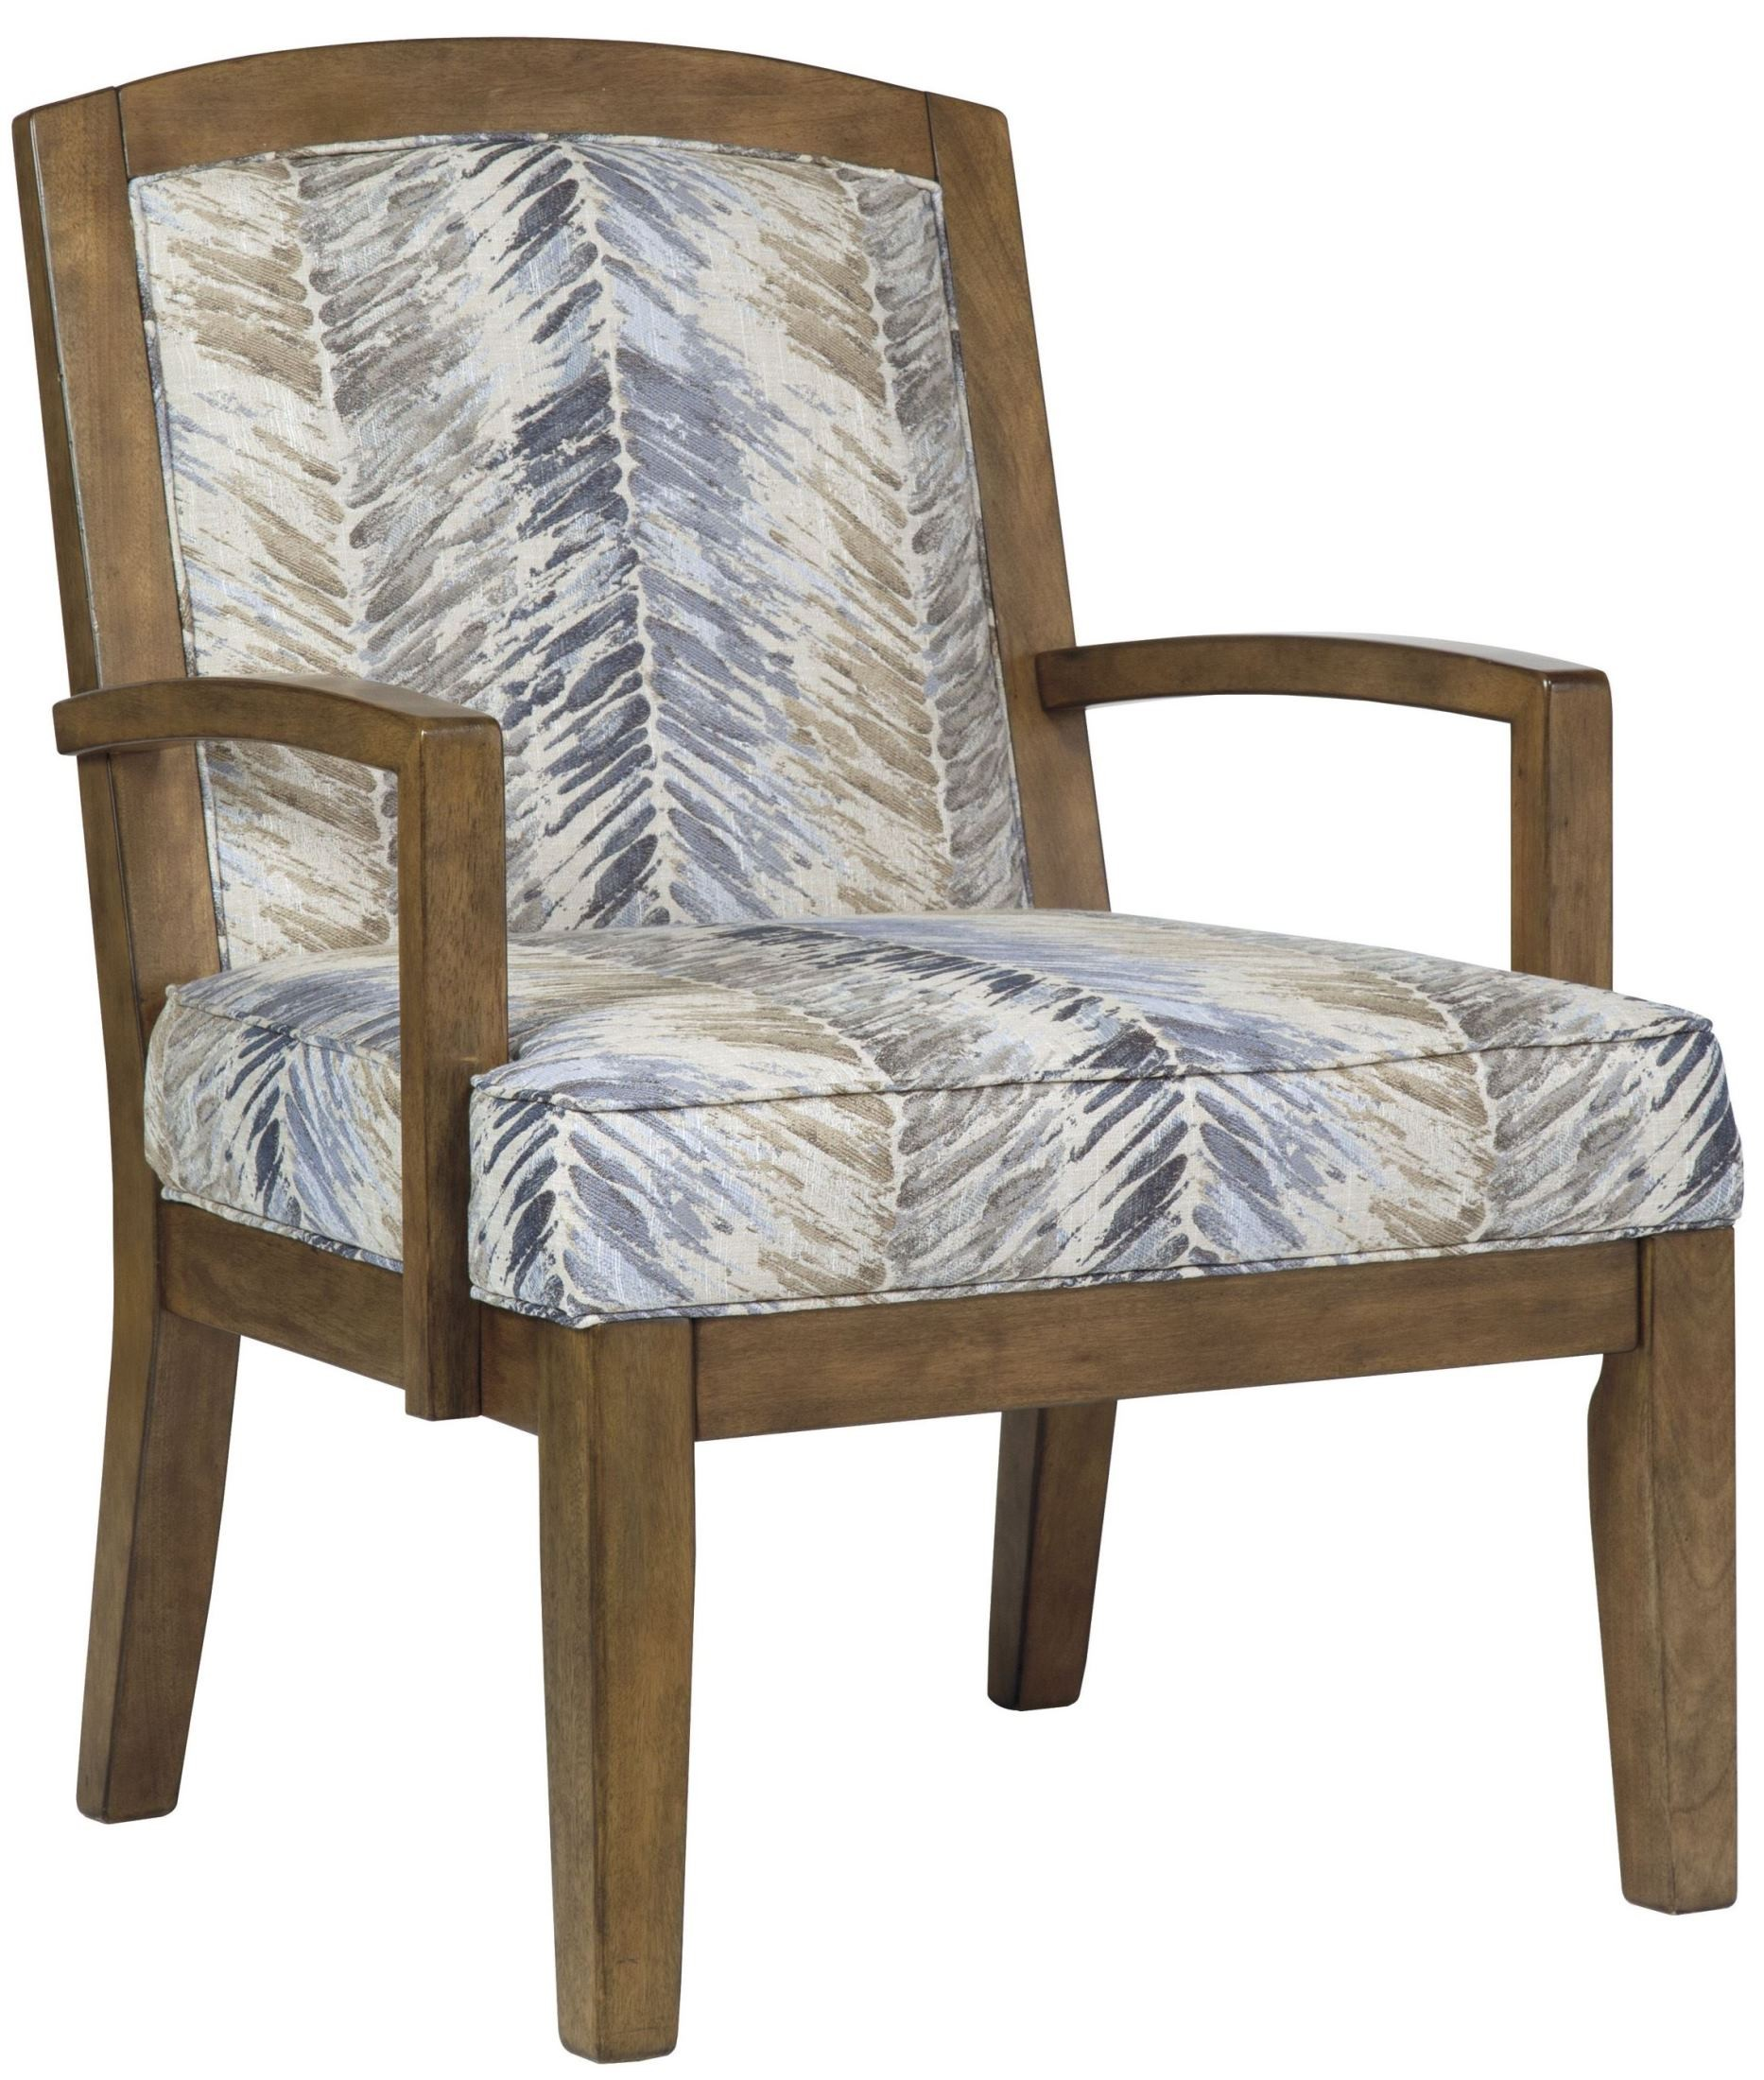 Hillsway multi color accent chair  ashley